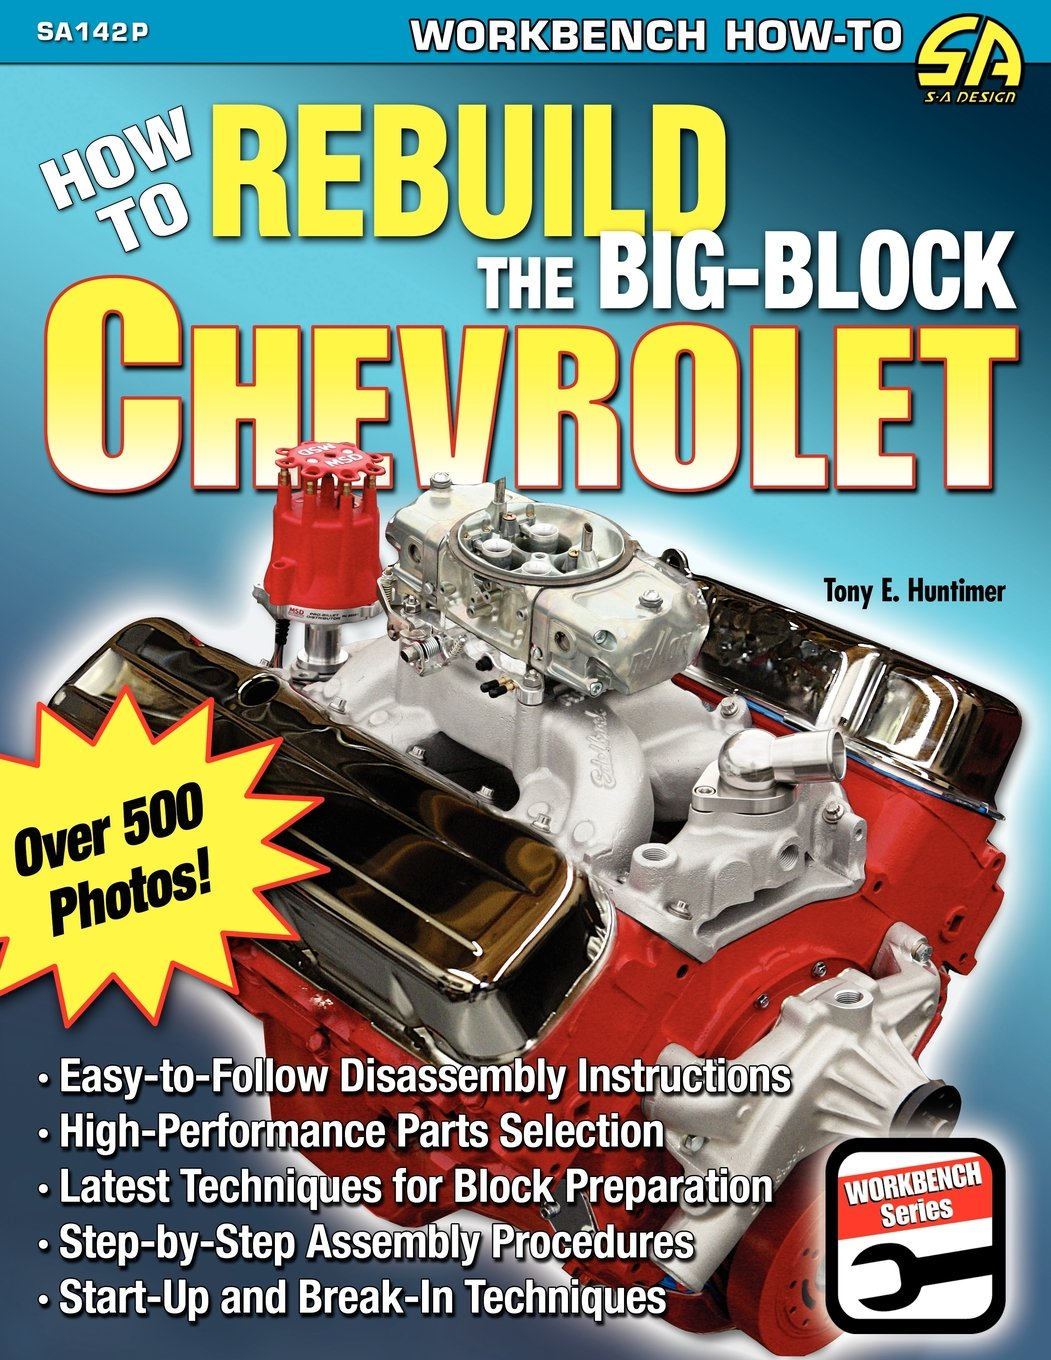 How to Rebuild the Big-Block Chevrolet: Tony E. Huntimer: 9781613250525:  Amazon.com: Books